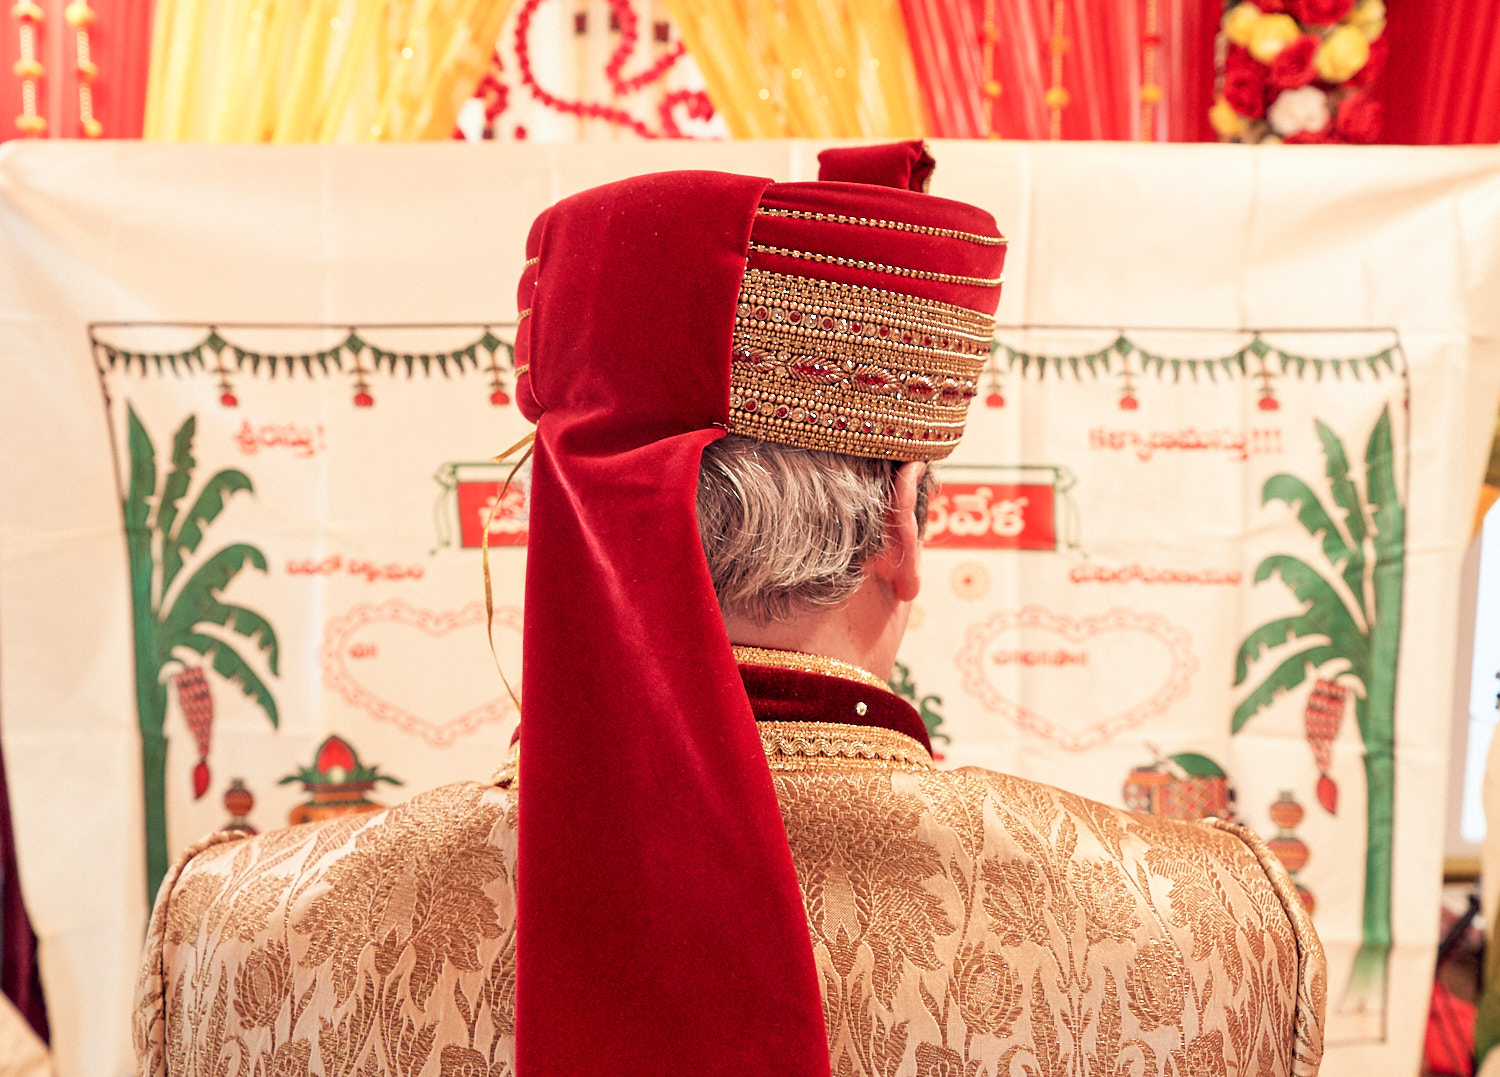 south-indian-wedding-ceremony-photography-by-afewgoodclicks-net-in-saratoga 104.jpg